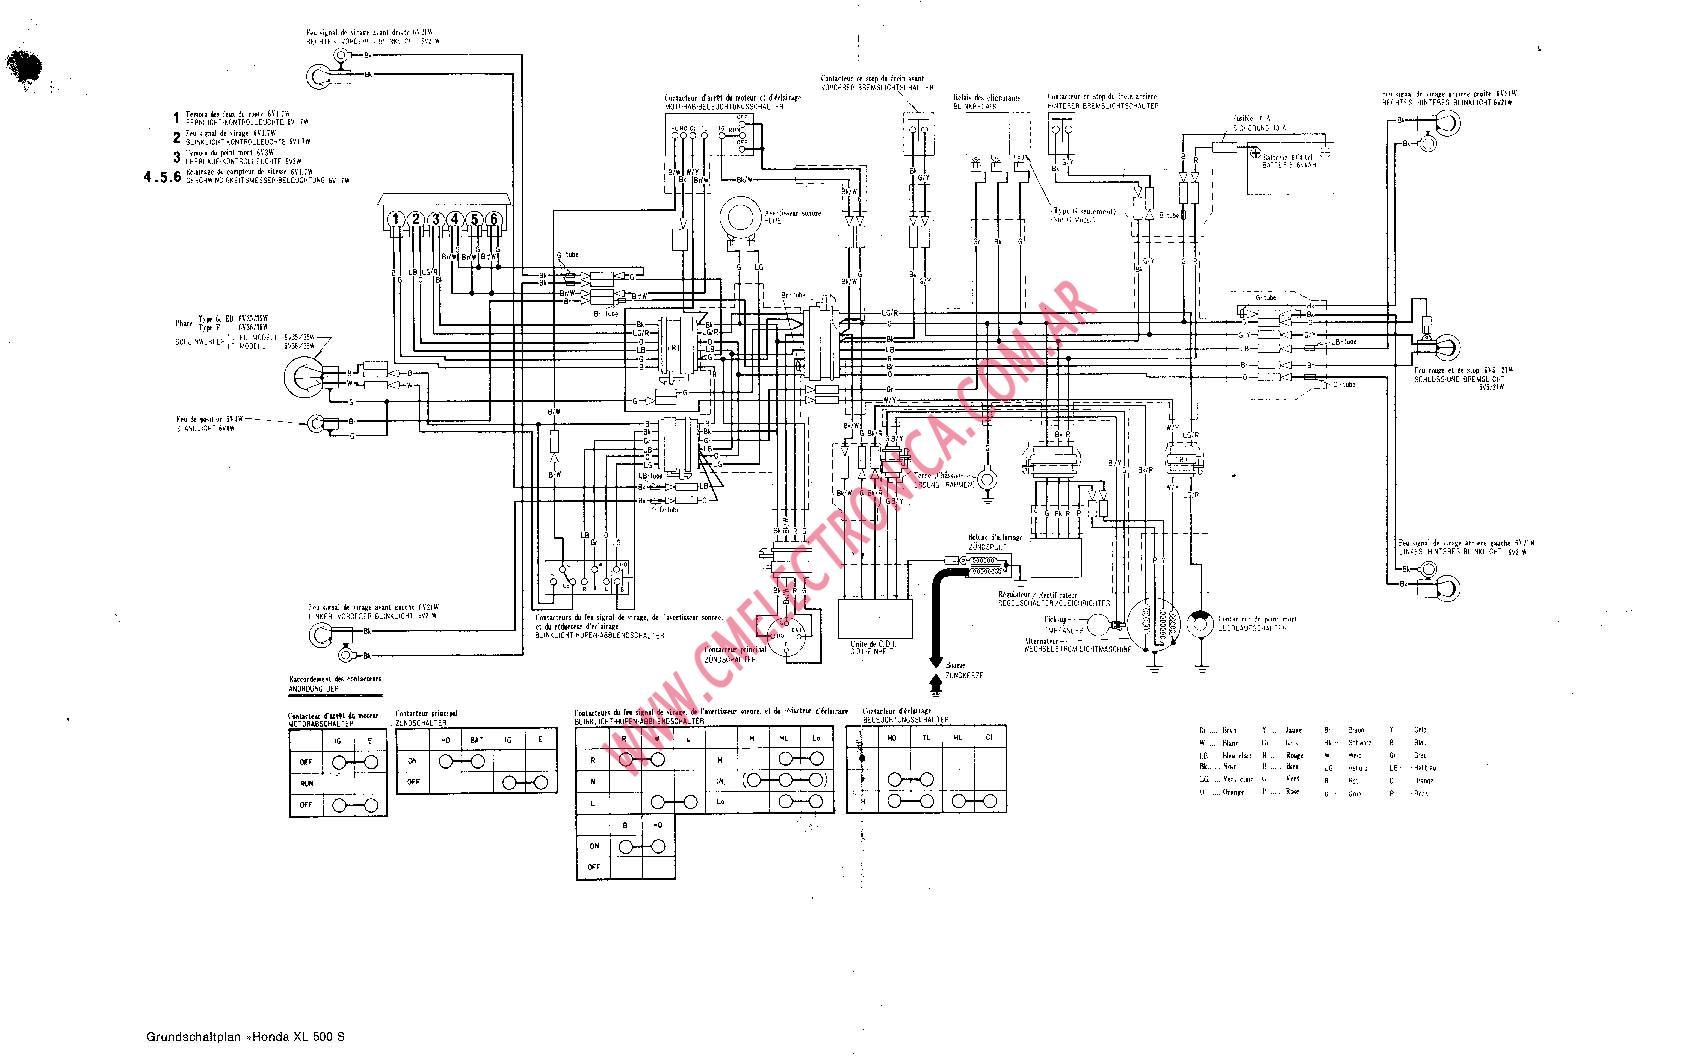 Xl500r Wiring Diagram Everything About M151a2 Honda Xl 500 Library Rh 13 Codingcommunity De 1982